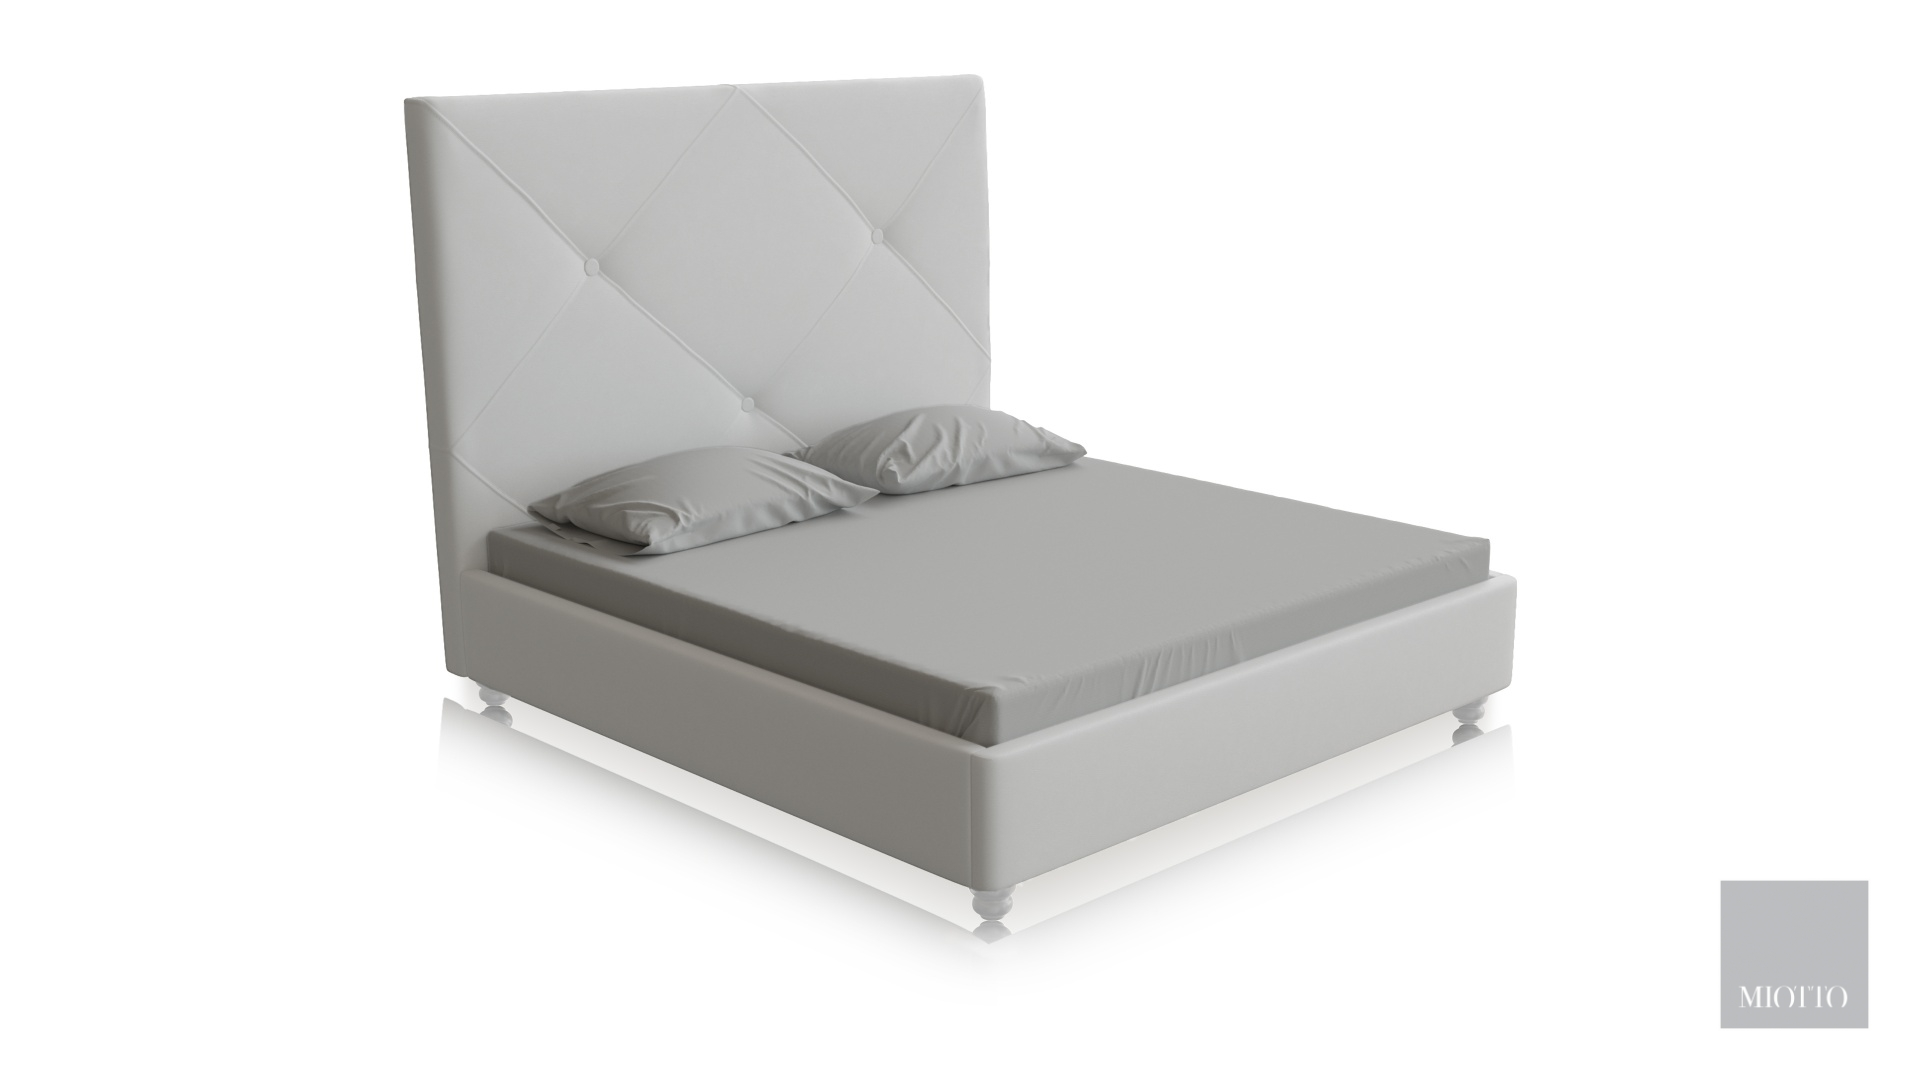 miotto_nocea bed white miotto bedroom furniture